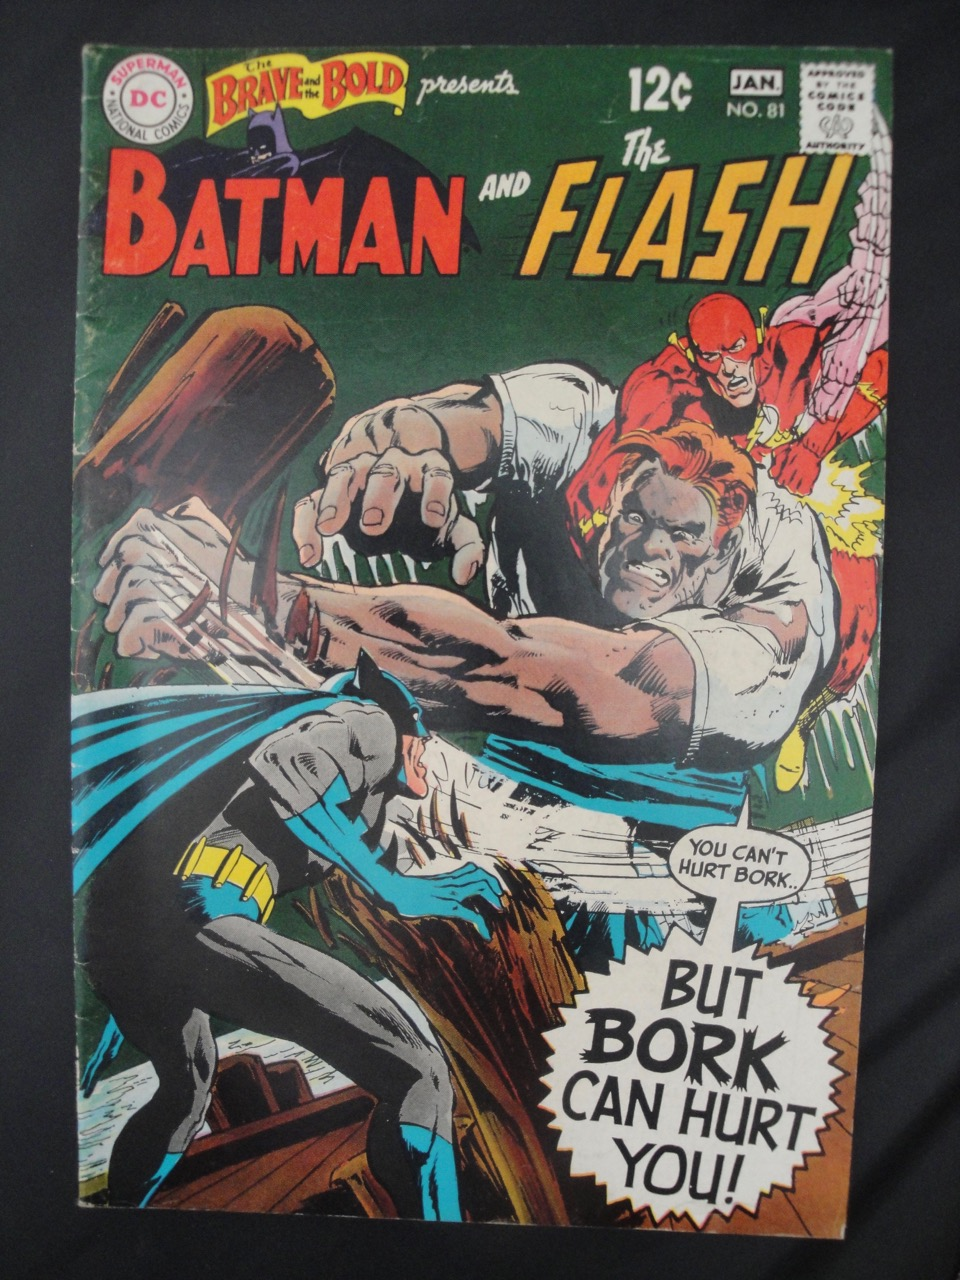 Brave and the Bold #81, Jan 1969, Batman, Flash, art by Neal Adams